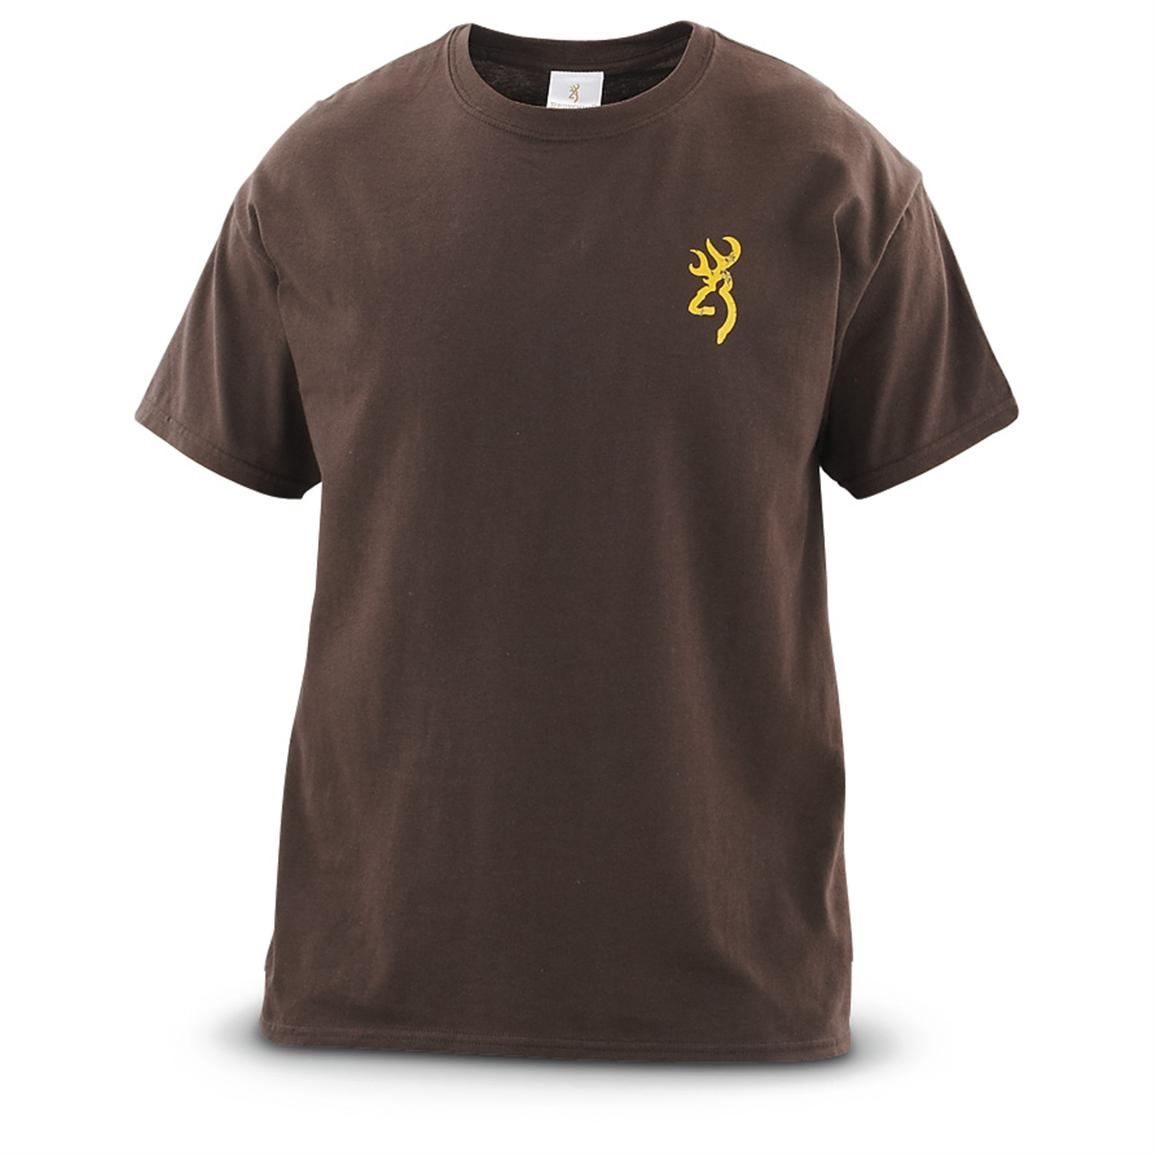 Browning® Graphic T-shirt, Chocolate